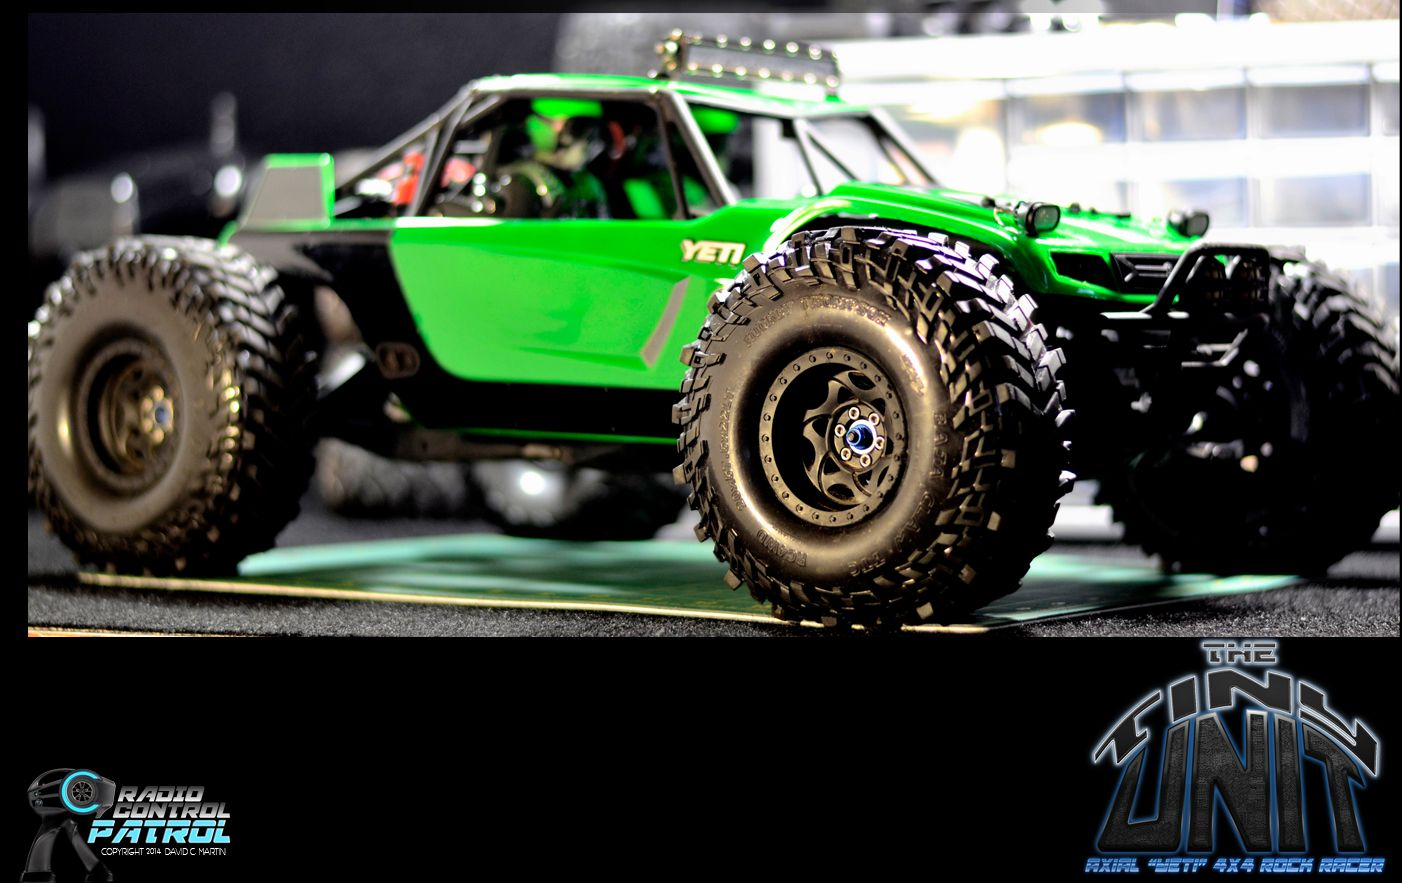 The first custom paint job on the rc patrol axial yeti rtr we chose florescent green with the factory black decals rc rcpatrol thetinyunit axialracing